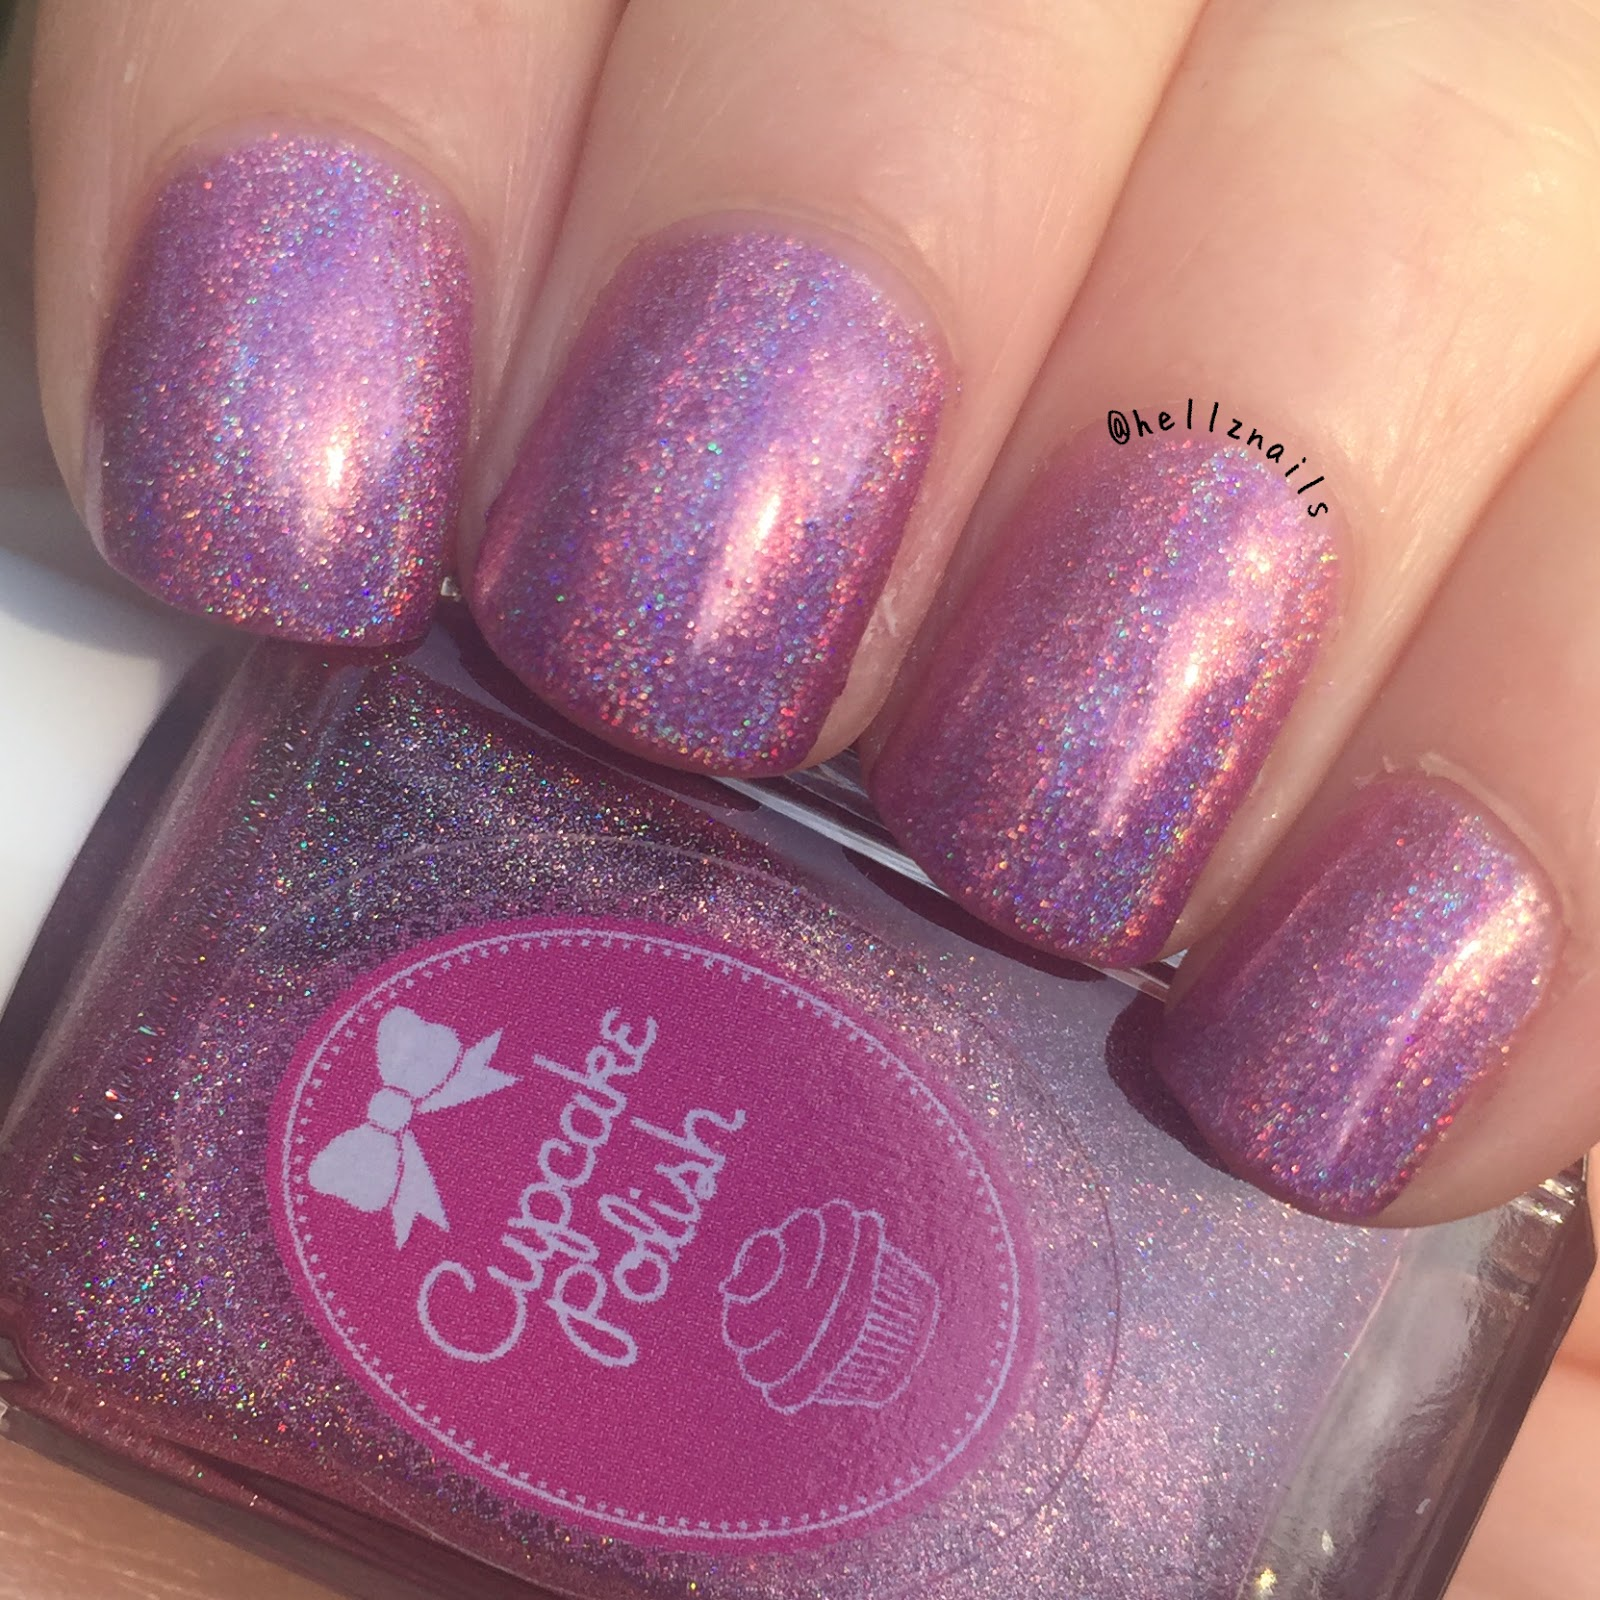 Cupcake Polish Hatch of the Day swatch